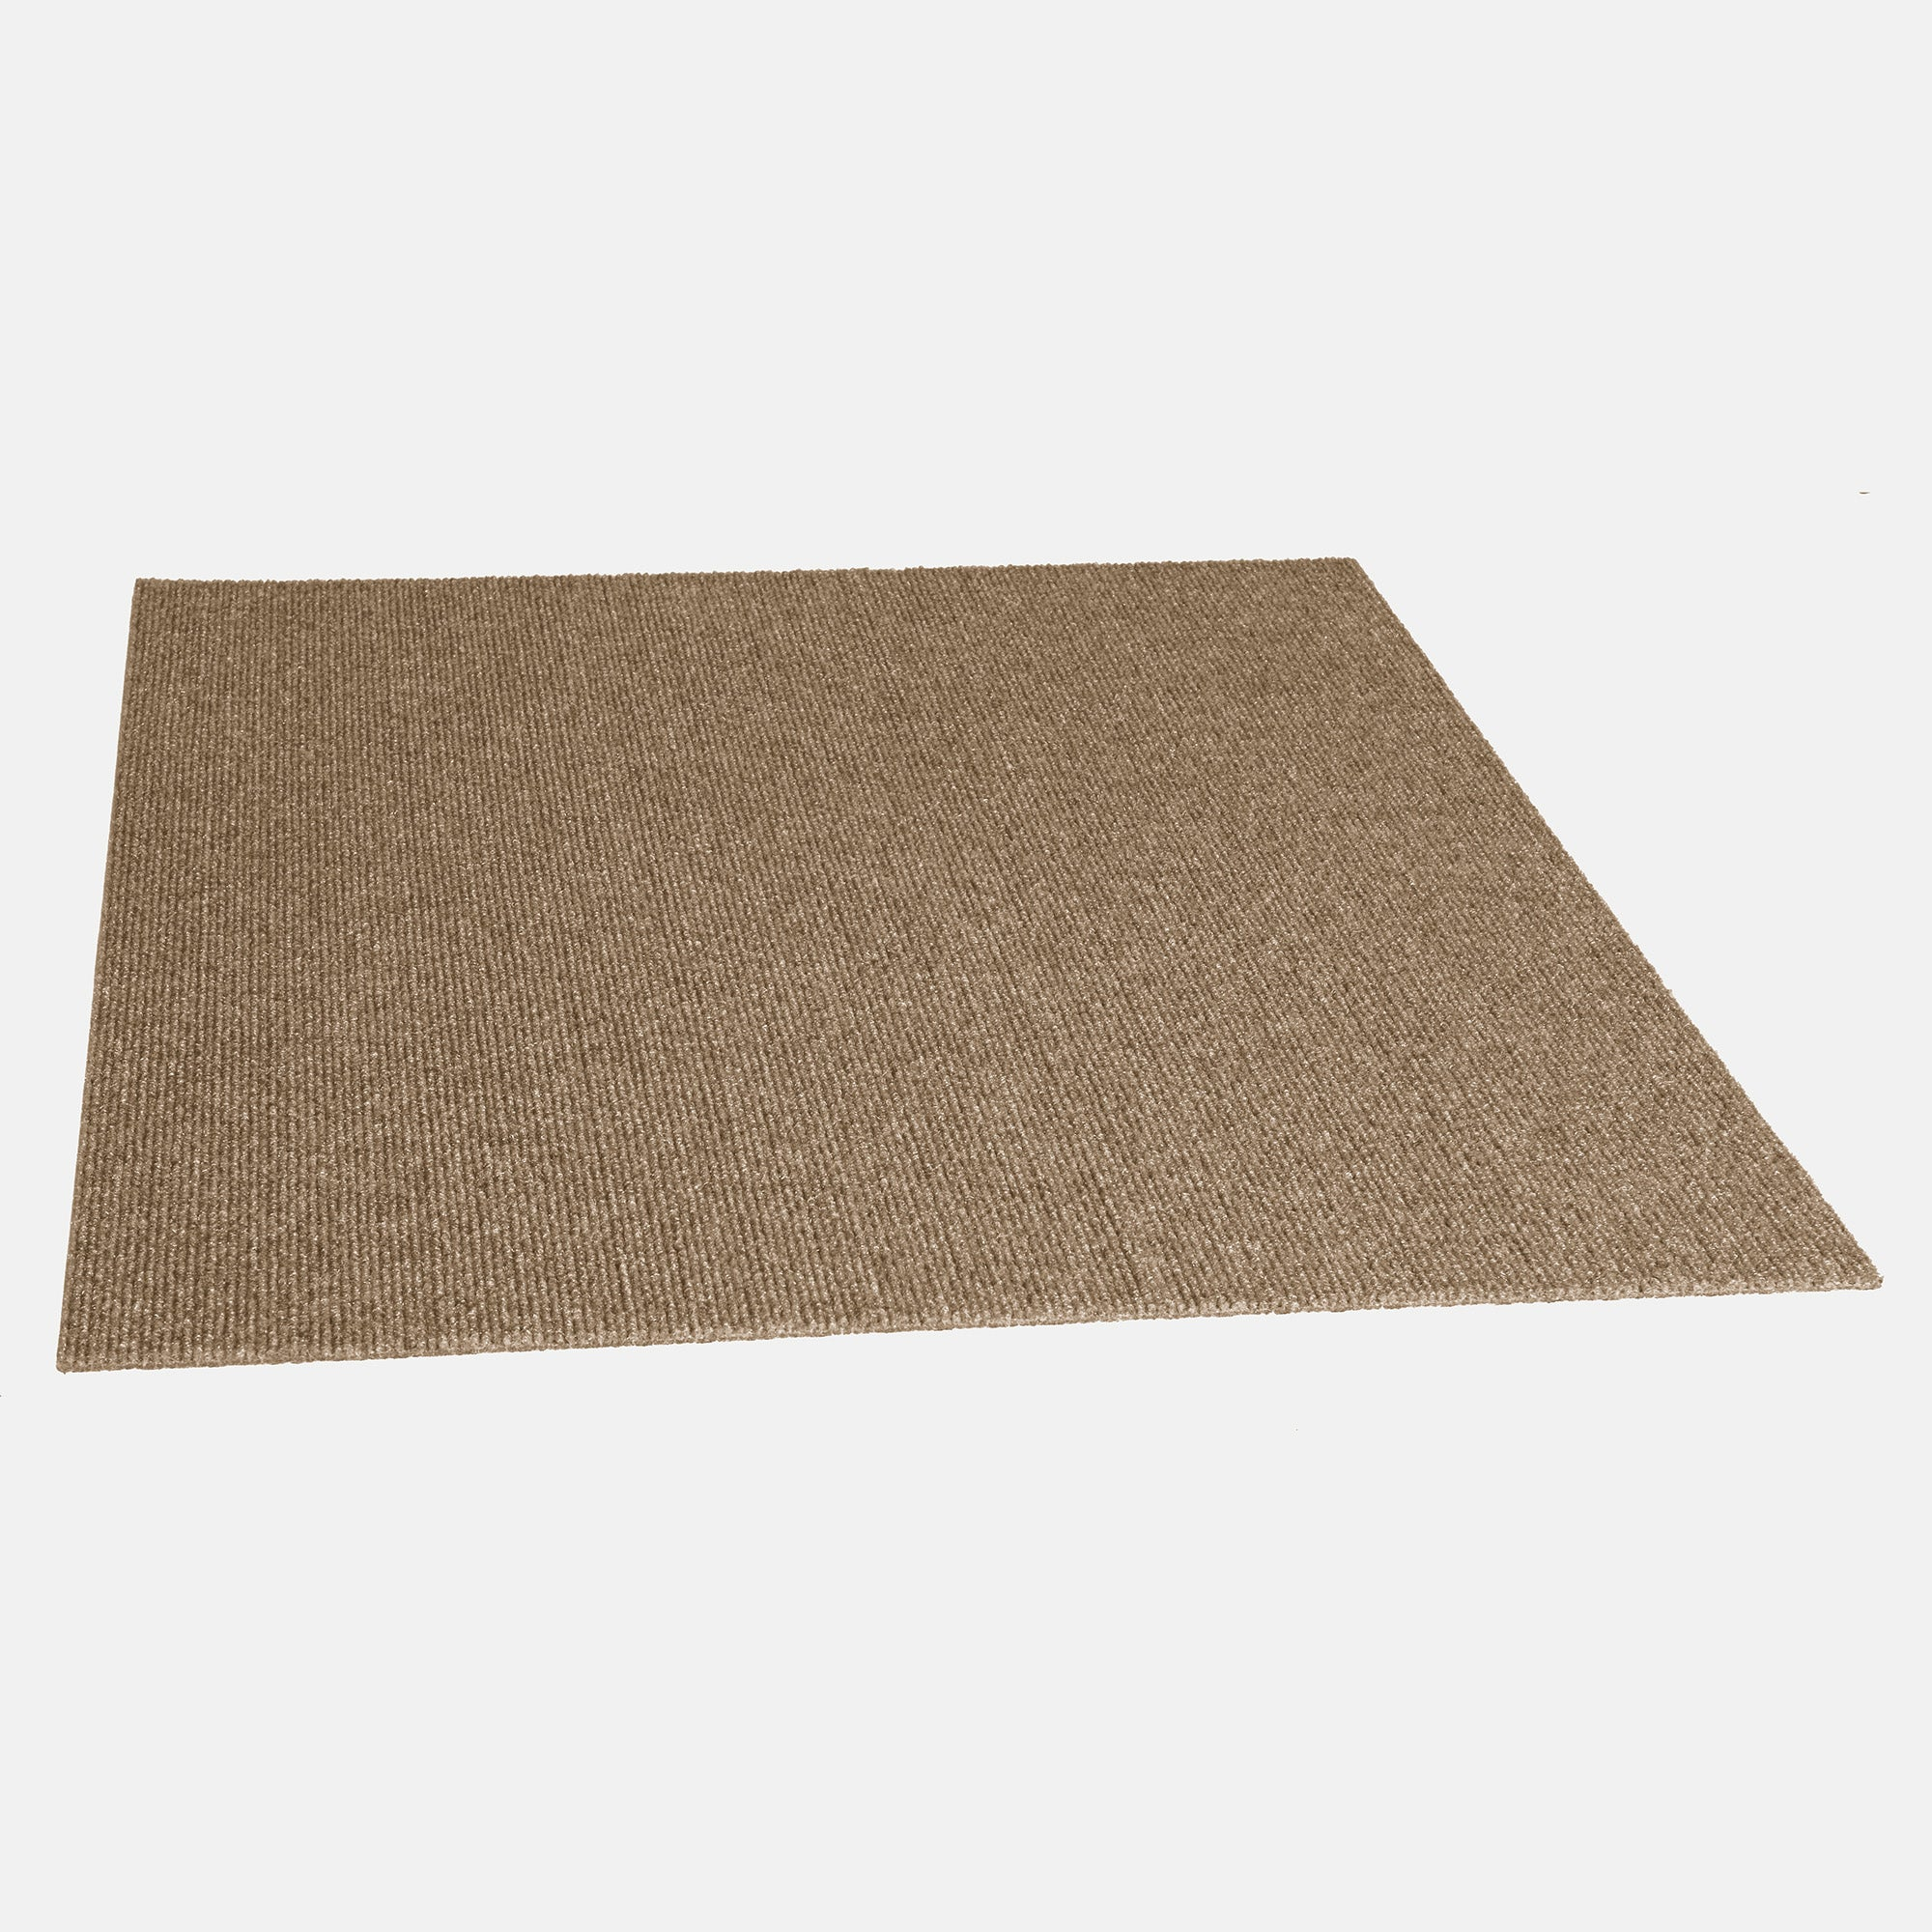 Pioneer 24'' X 24'' Premium Peel And Stick Carpet Tiles (Espresso)